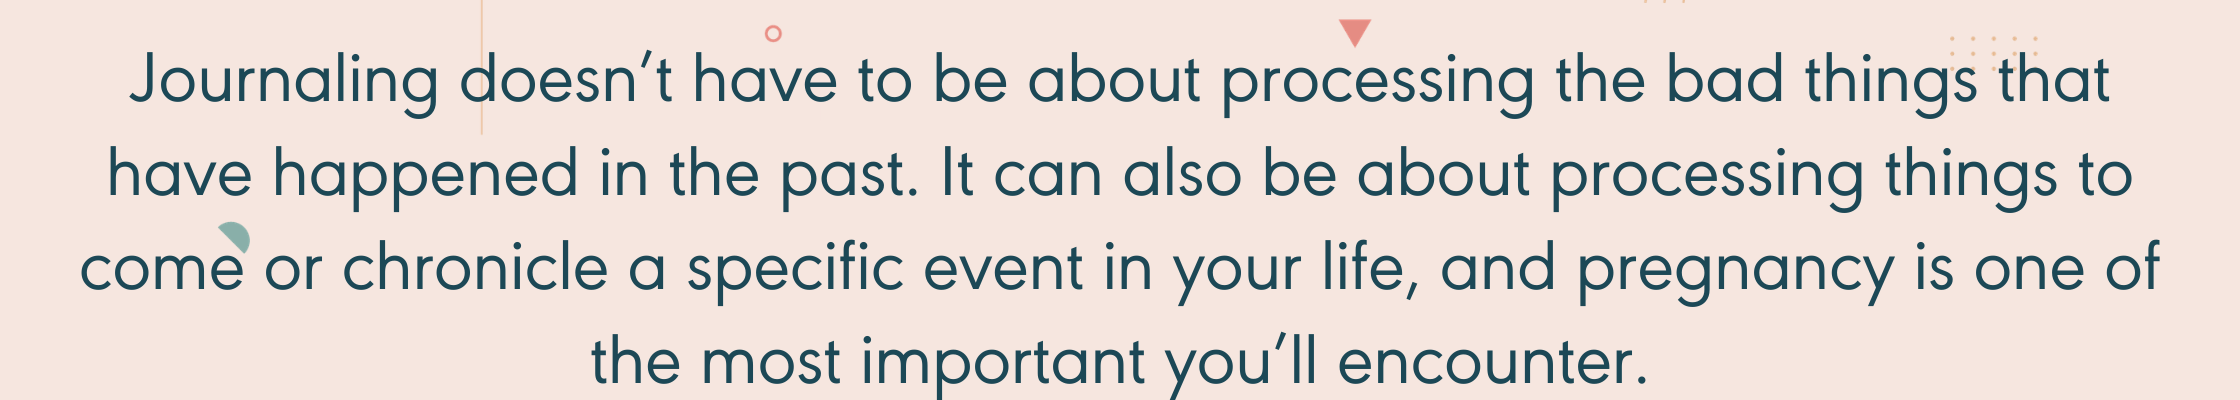 Quote about journaling during pregnancy